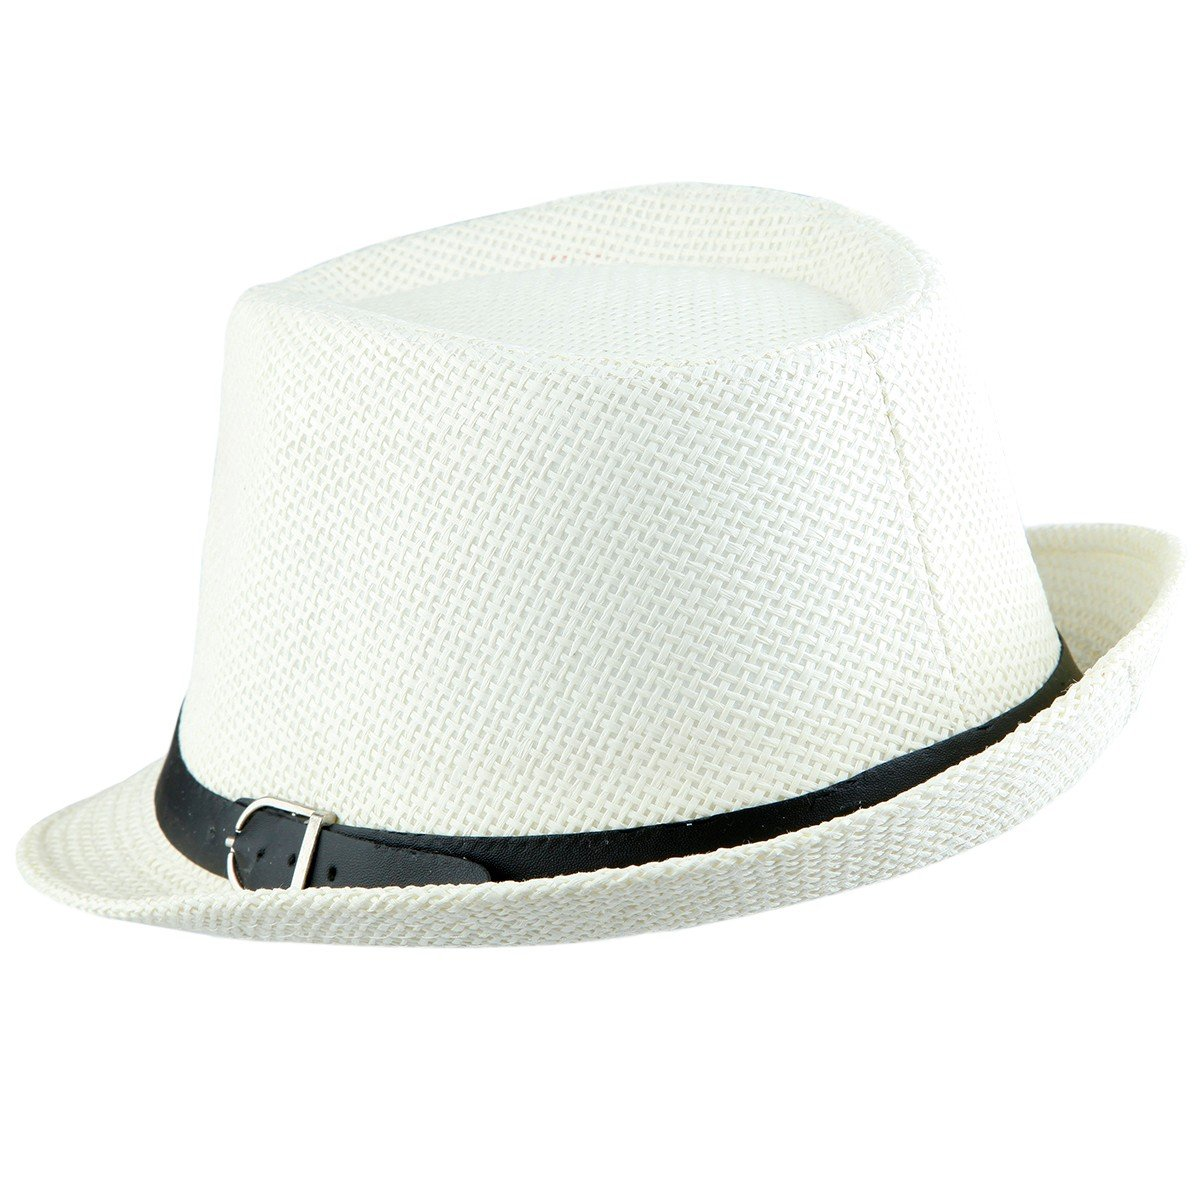 704ae8cc09cc84 Product description. Classic 4 colors knitted staw fedora hat for women men  ...